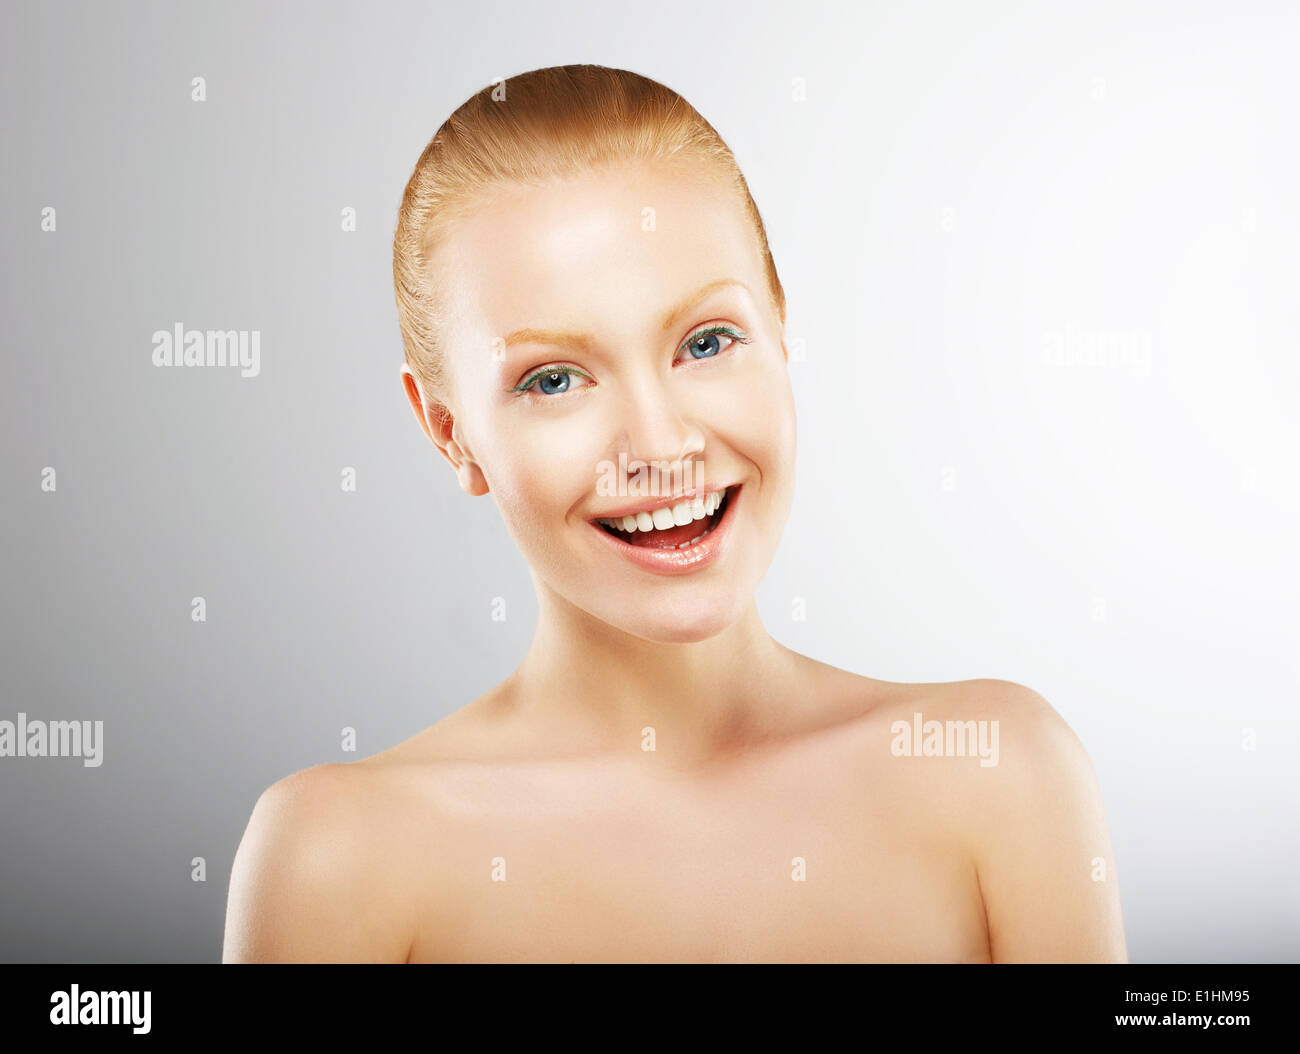 Carefree Young Woman Having Fun and Smiling. Pleasure - Stock Image